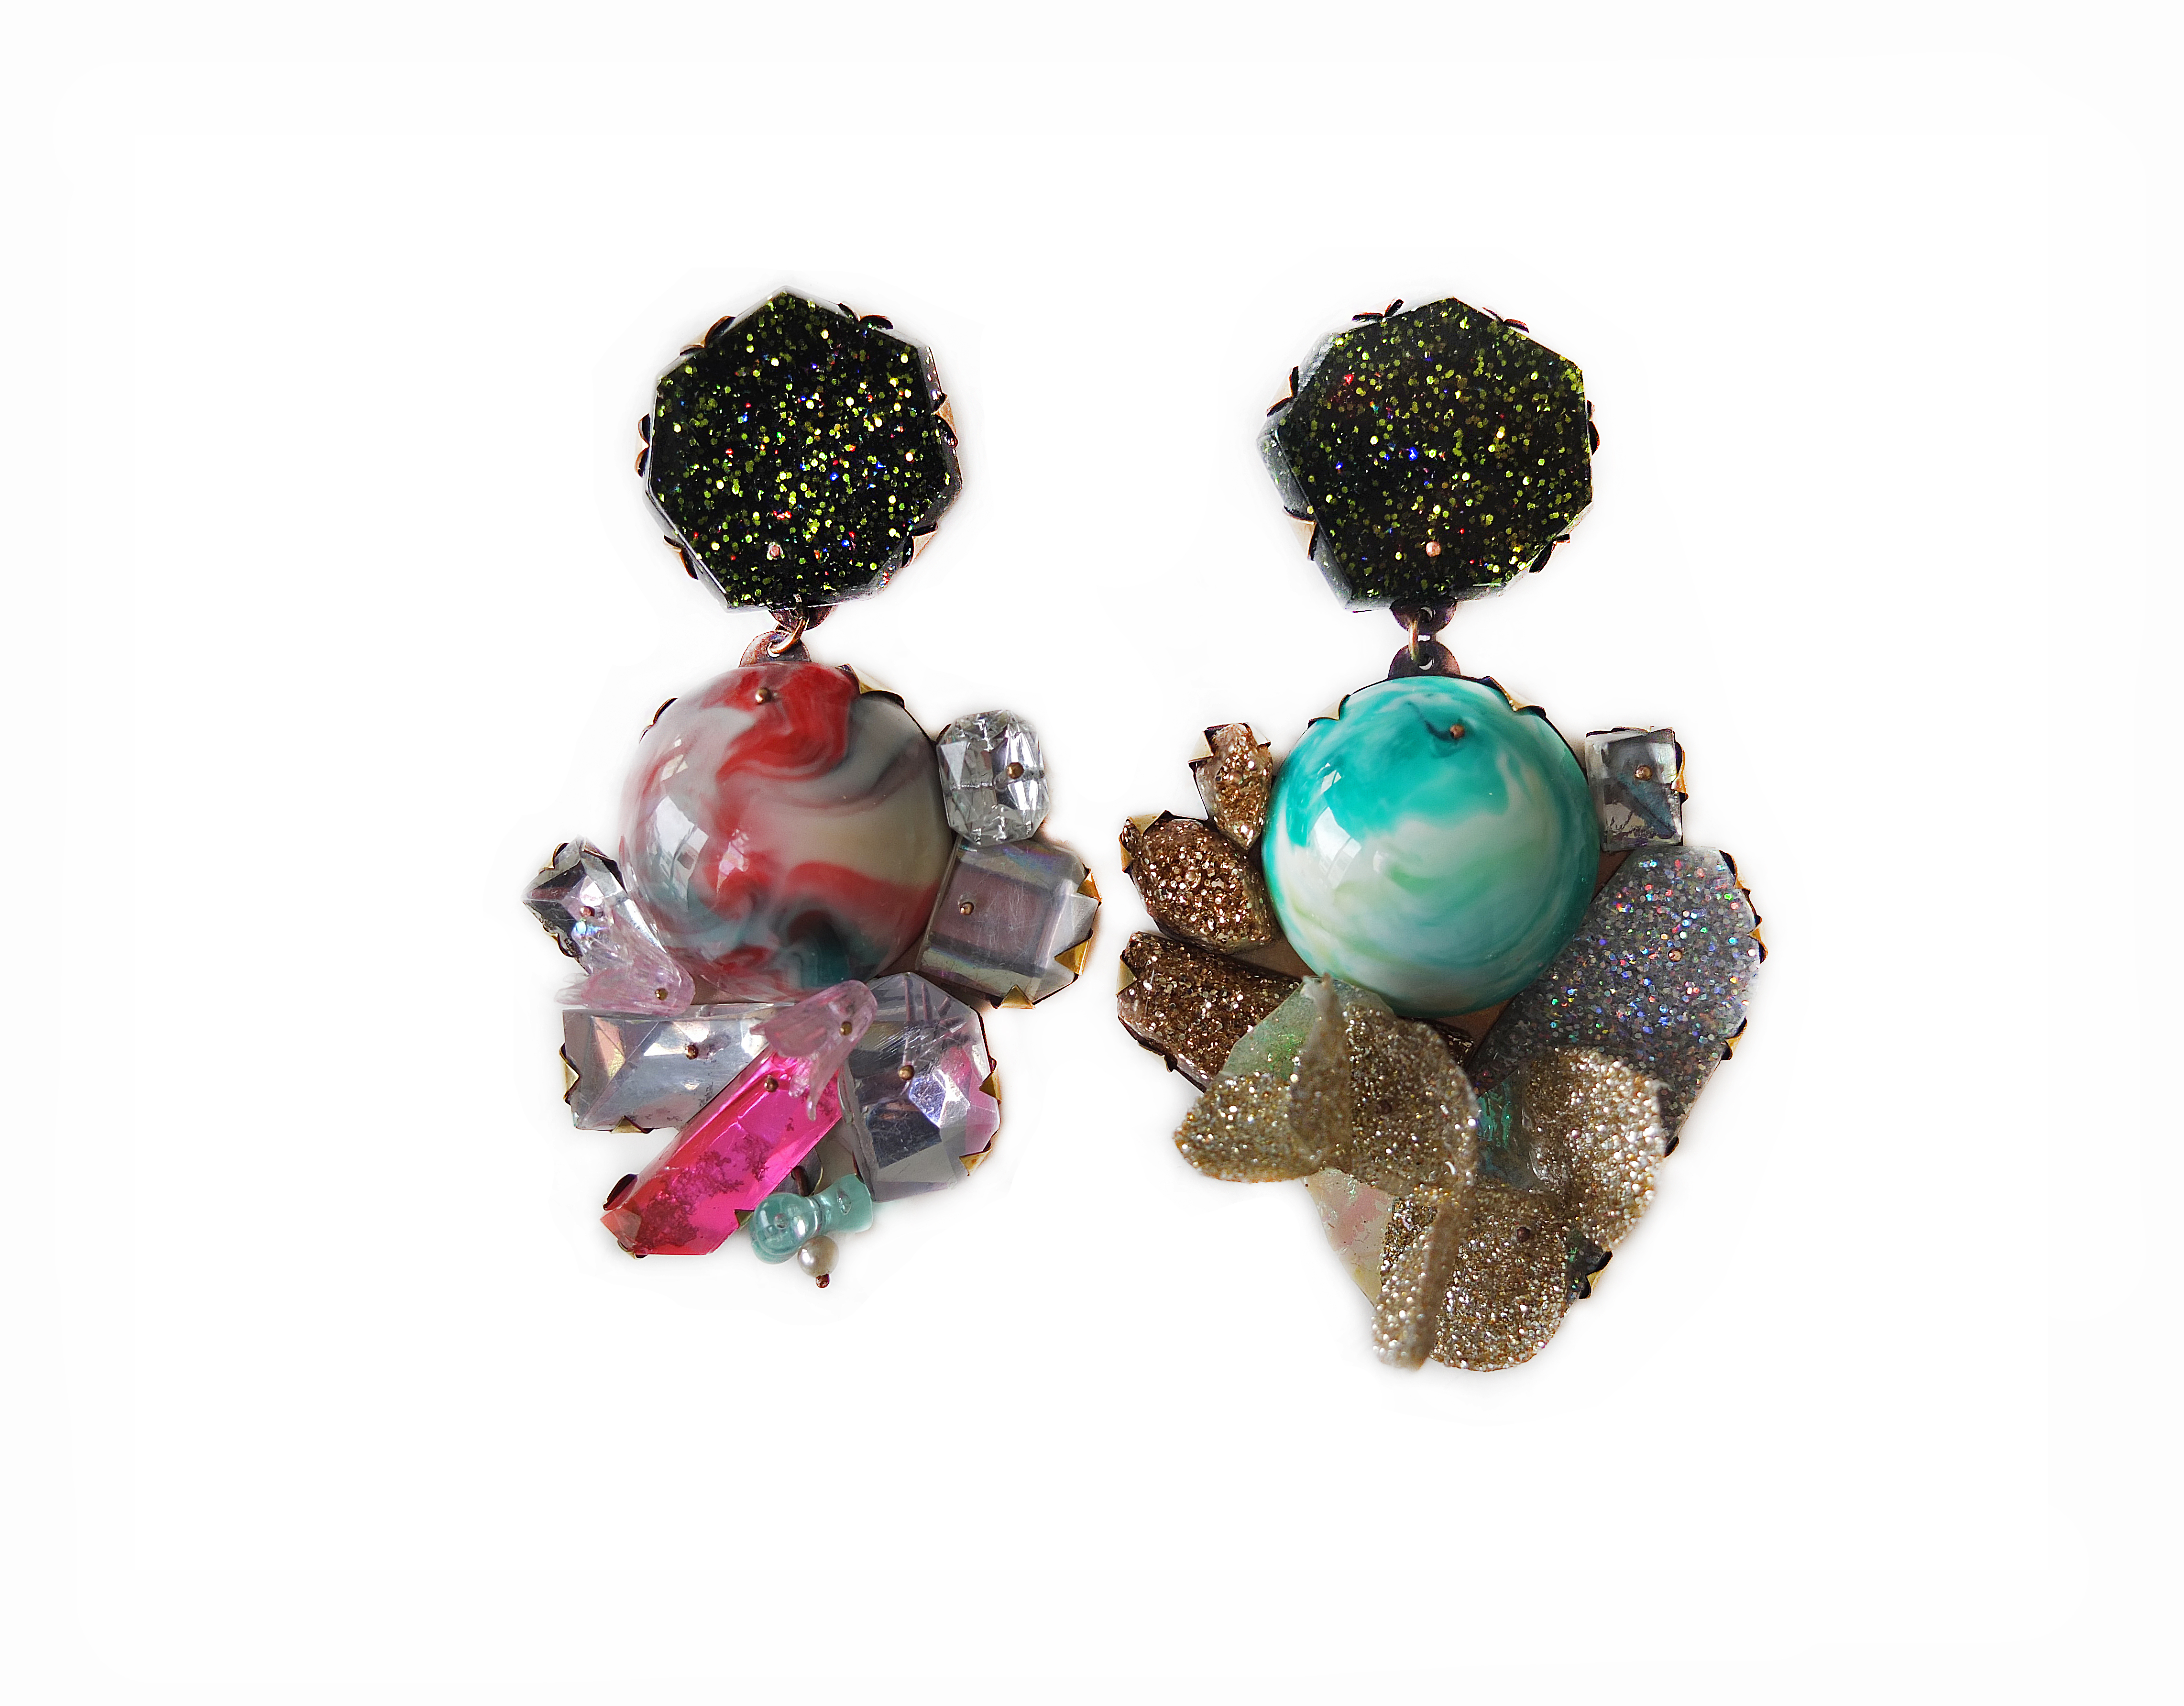 Nikki Couppee, 4th of July Drops, Plexiglass, brass, sterling silver, fine silver, found object